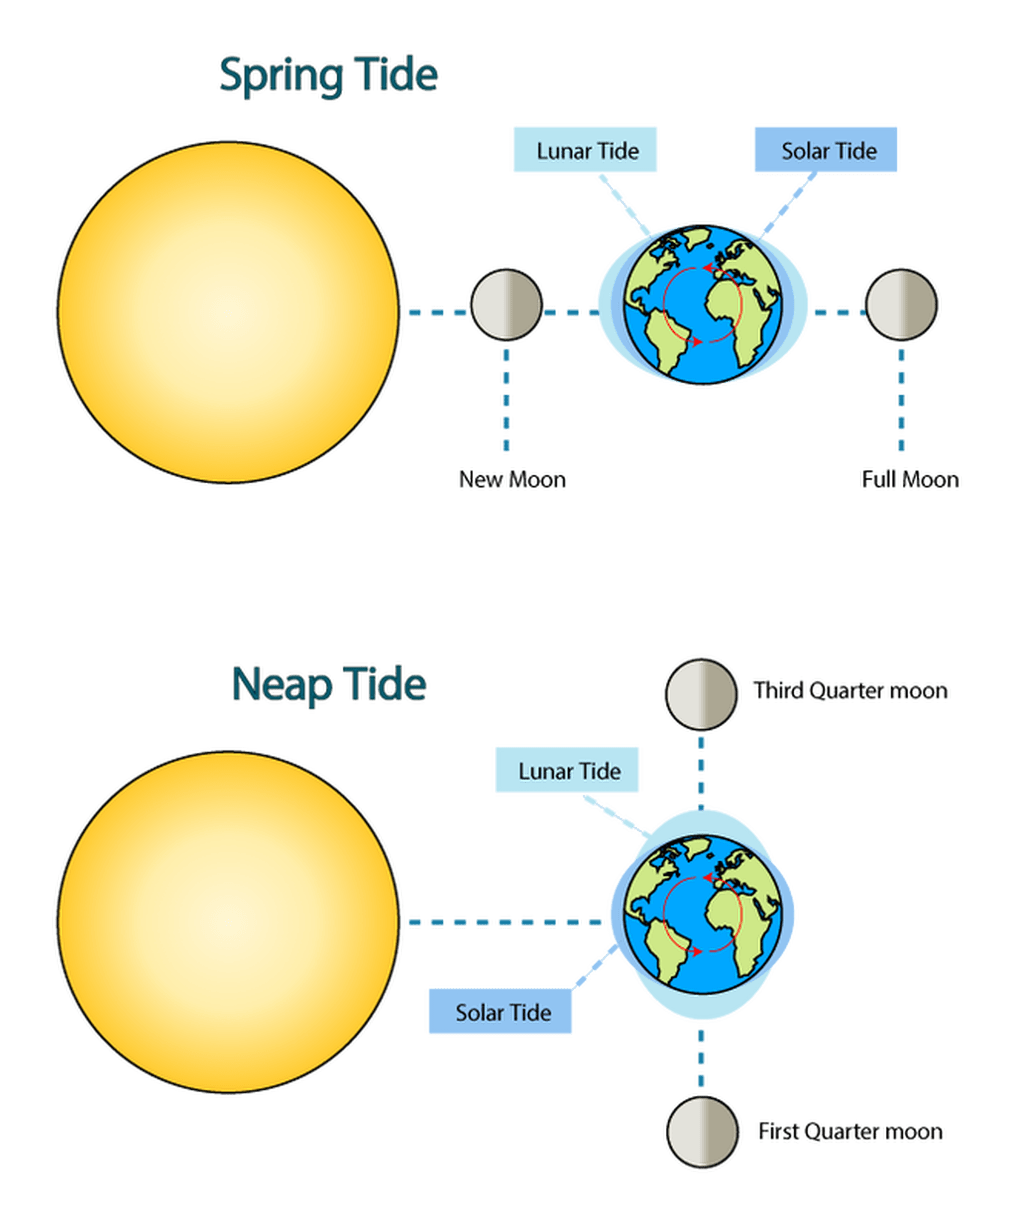 diagram of sunlight and moon wiring diagram tags diagram of sunlight and moon [ 1014 x 1230 Pixel ]